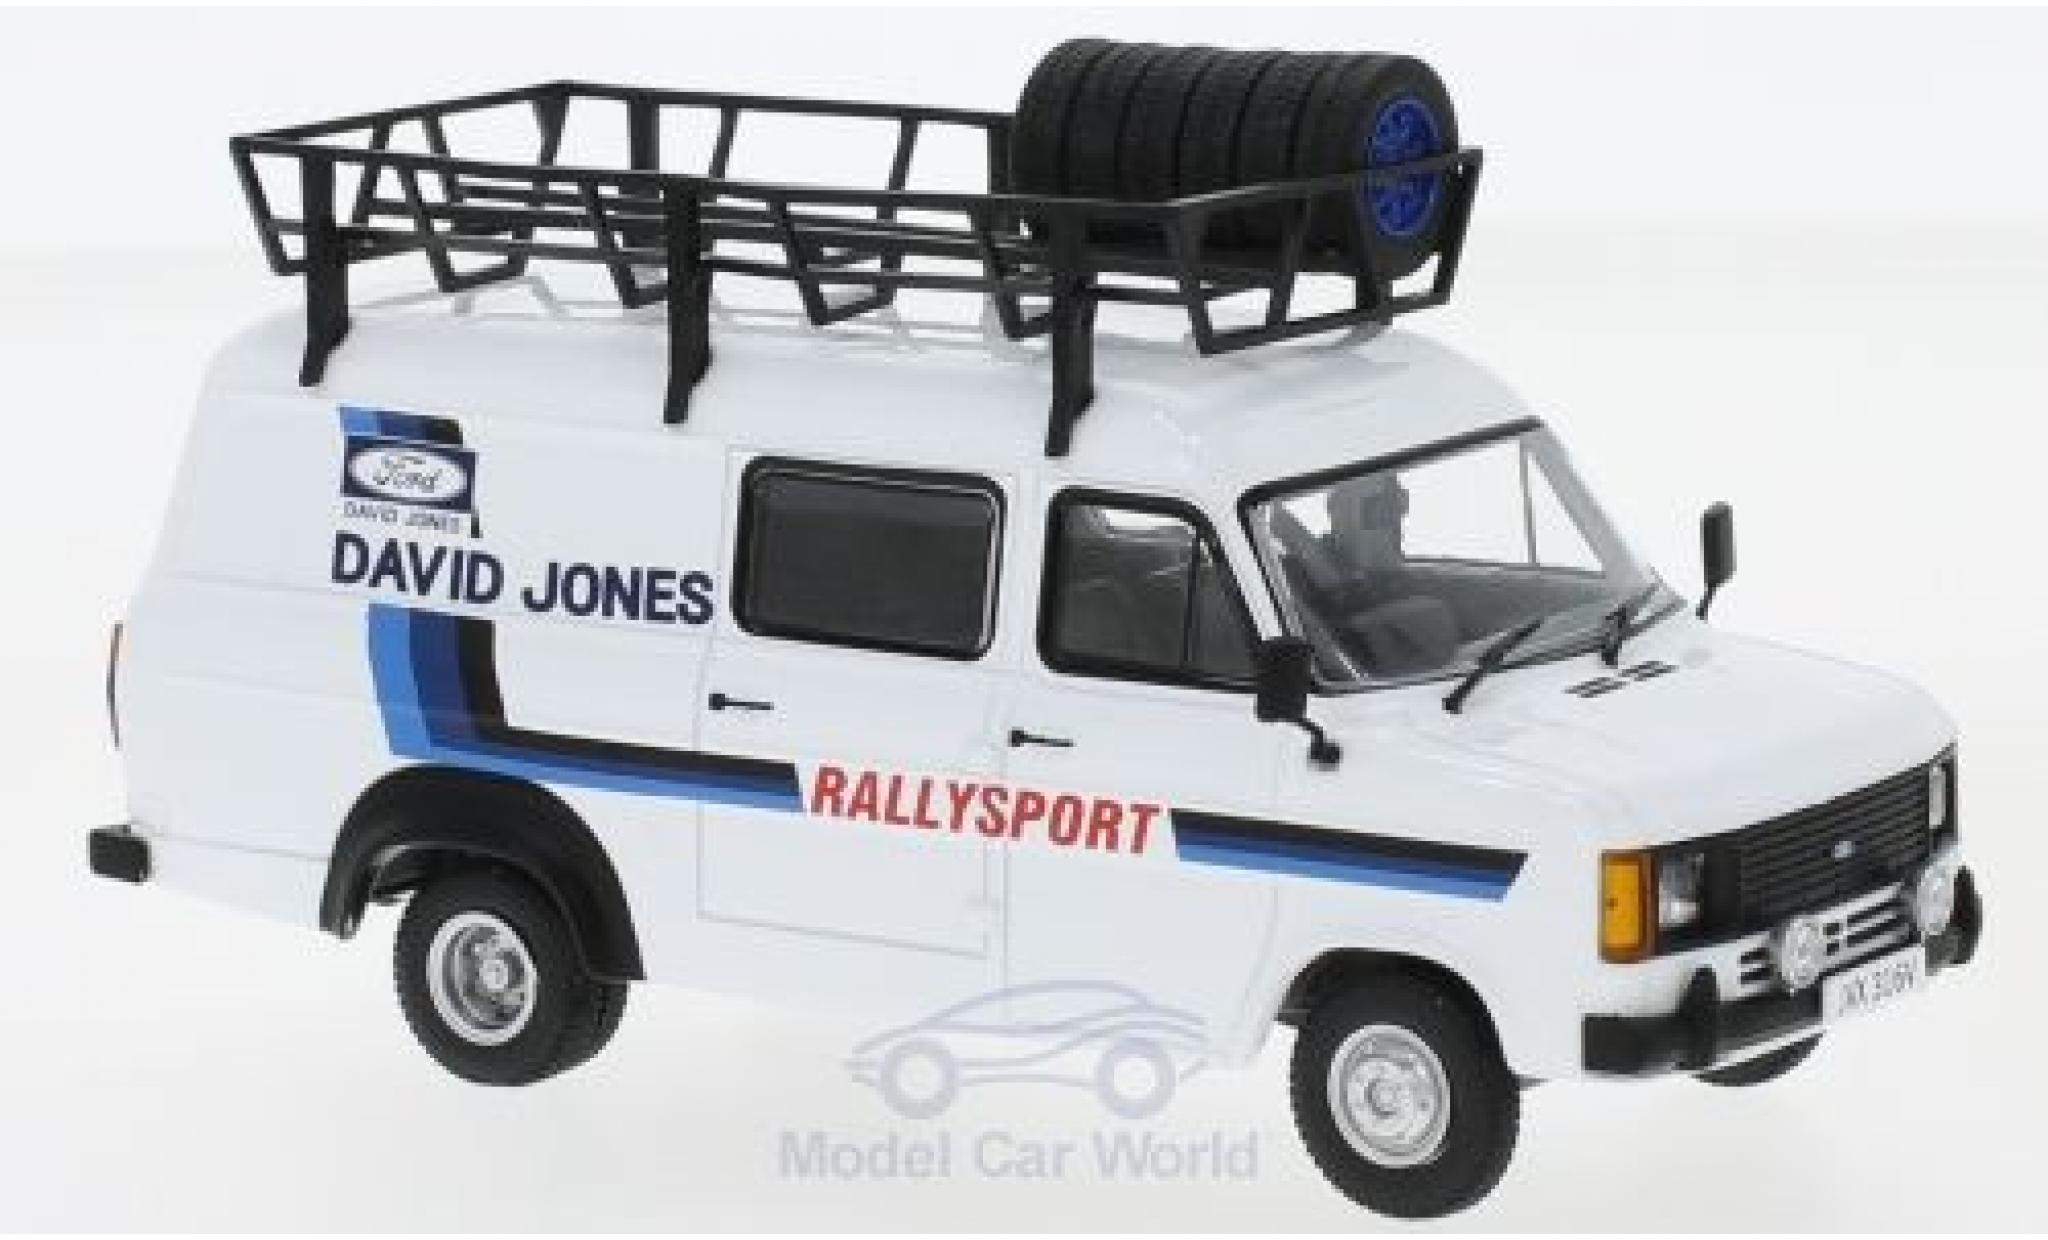 Ford Transit 1/43 IXO MKII RHD David Jones Rallysport David Jones 1980 Rally Assistance